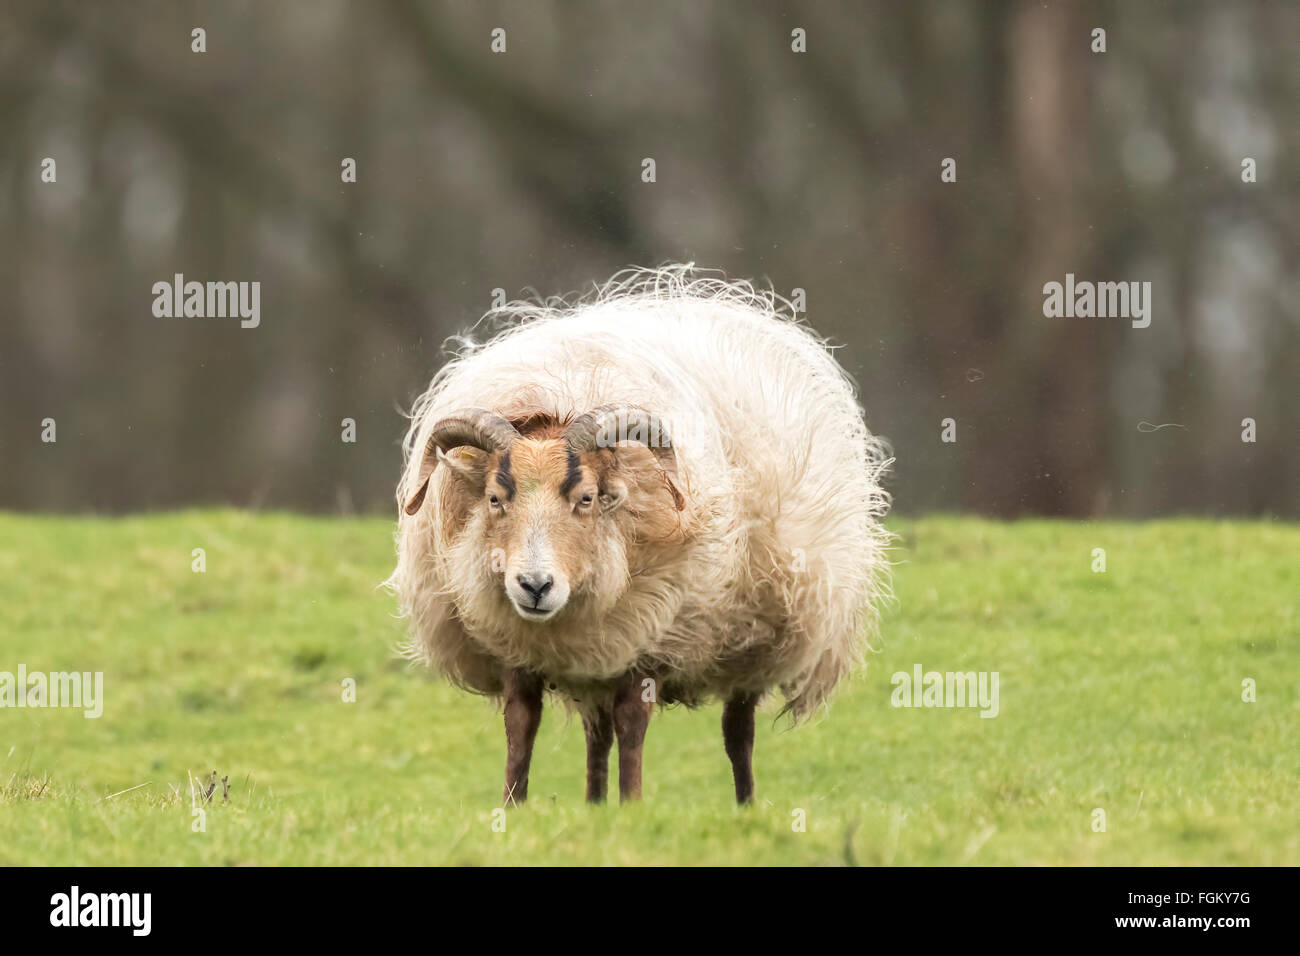 Sheep is shaking off fuzz and fluff. Flocks of hair are flying in the air. It is almost Spring, then the wool of - Stock Image